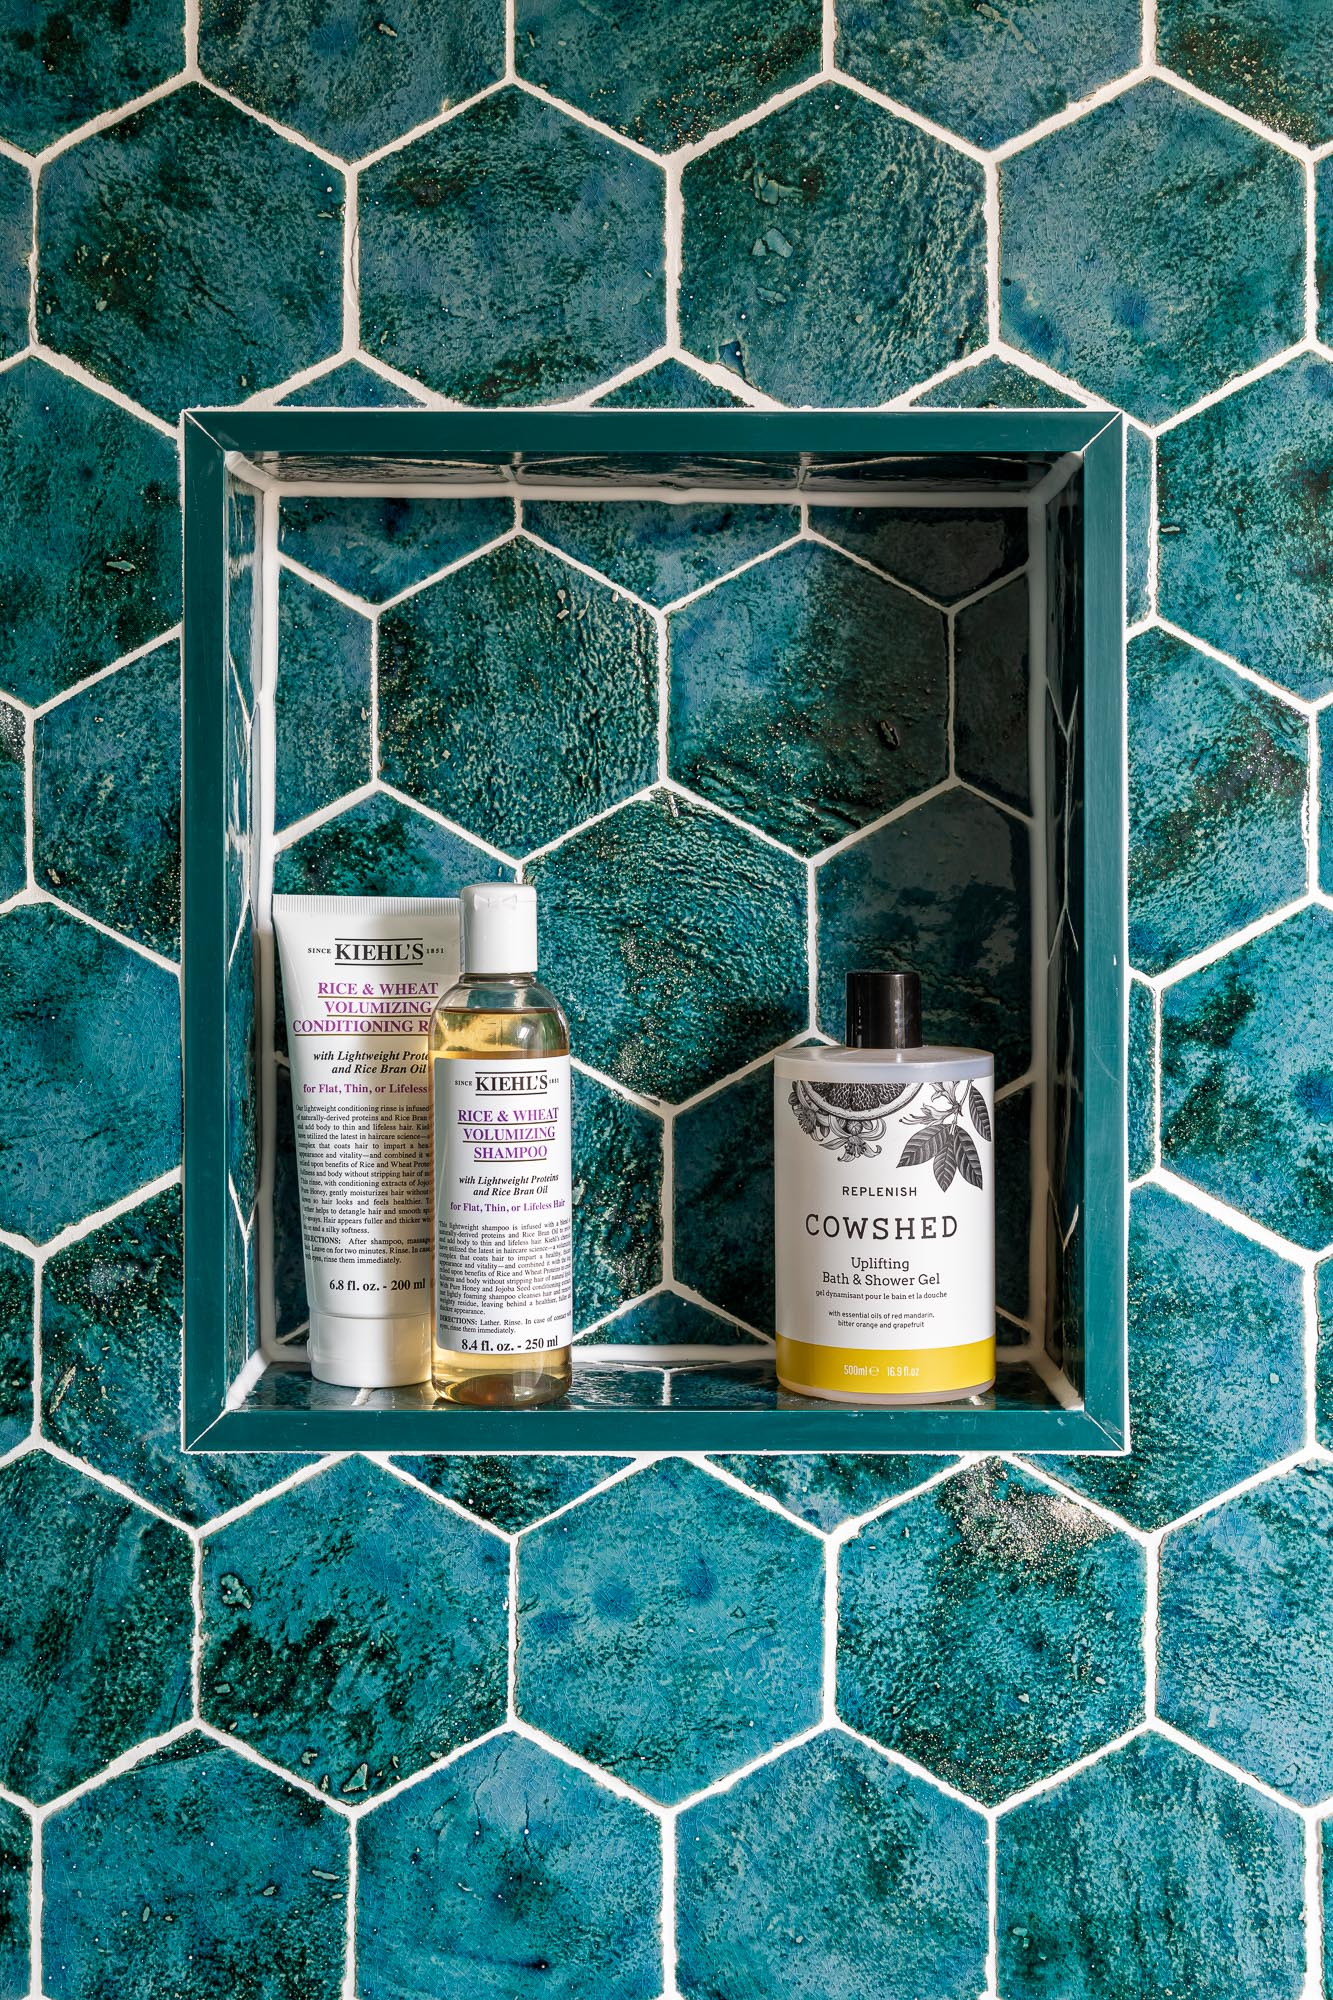 jonathan bond, interior photographer, recessed blue tiled bathroom shelf, marnhull, dorset